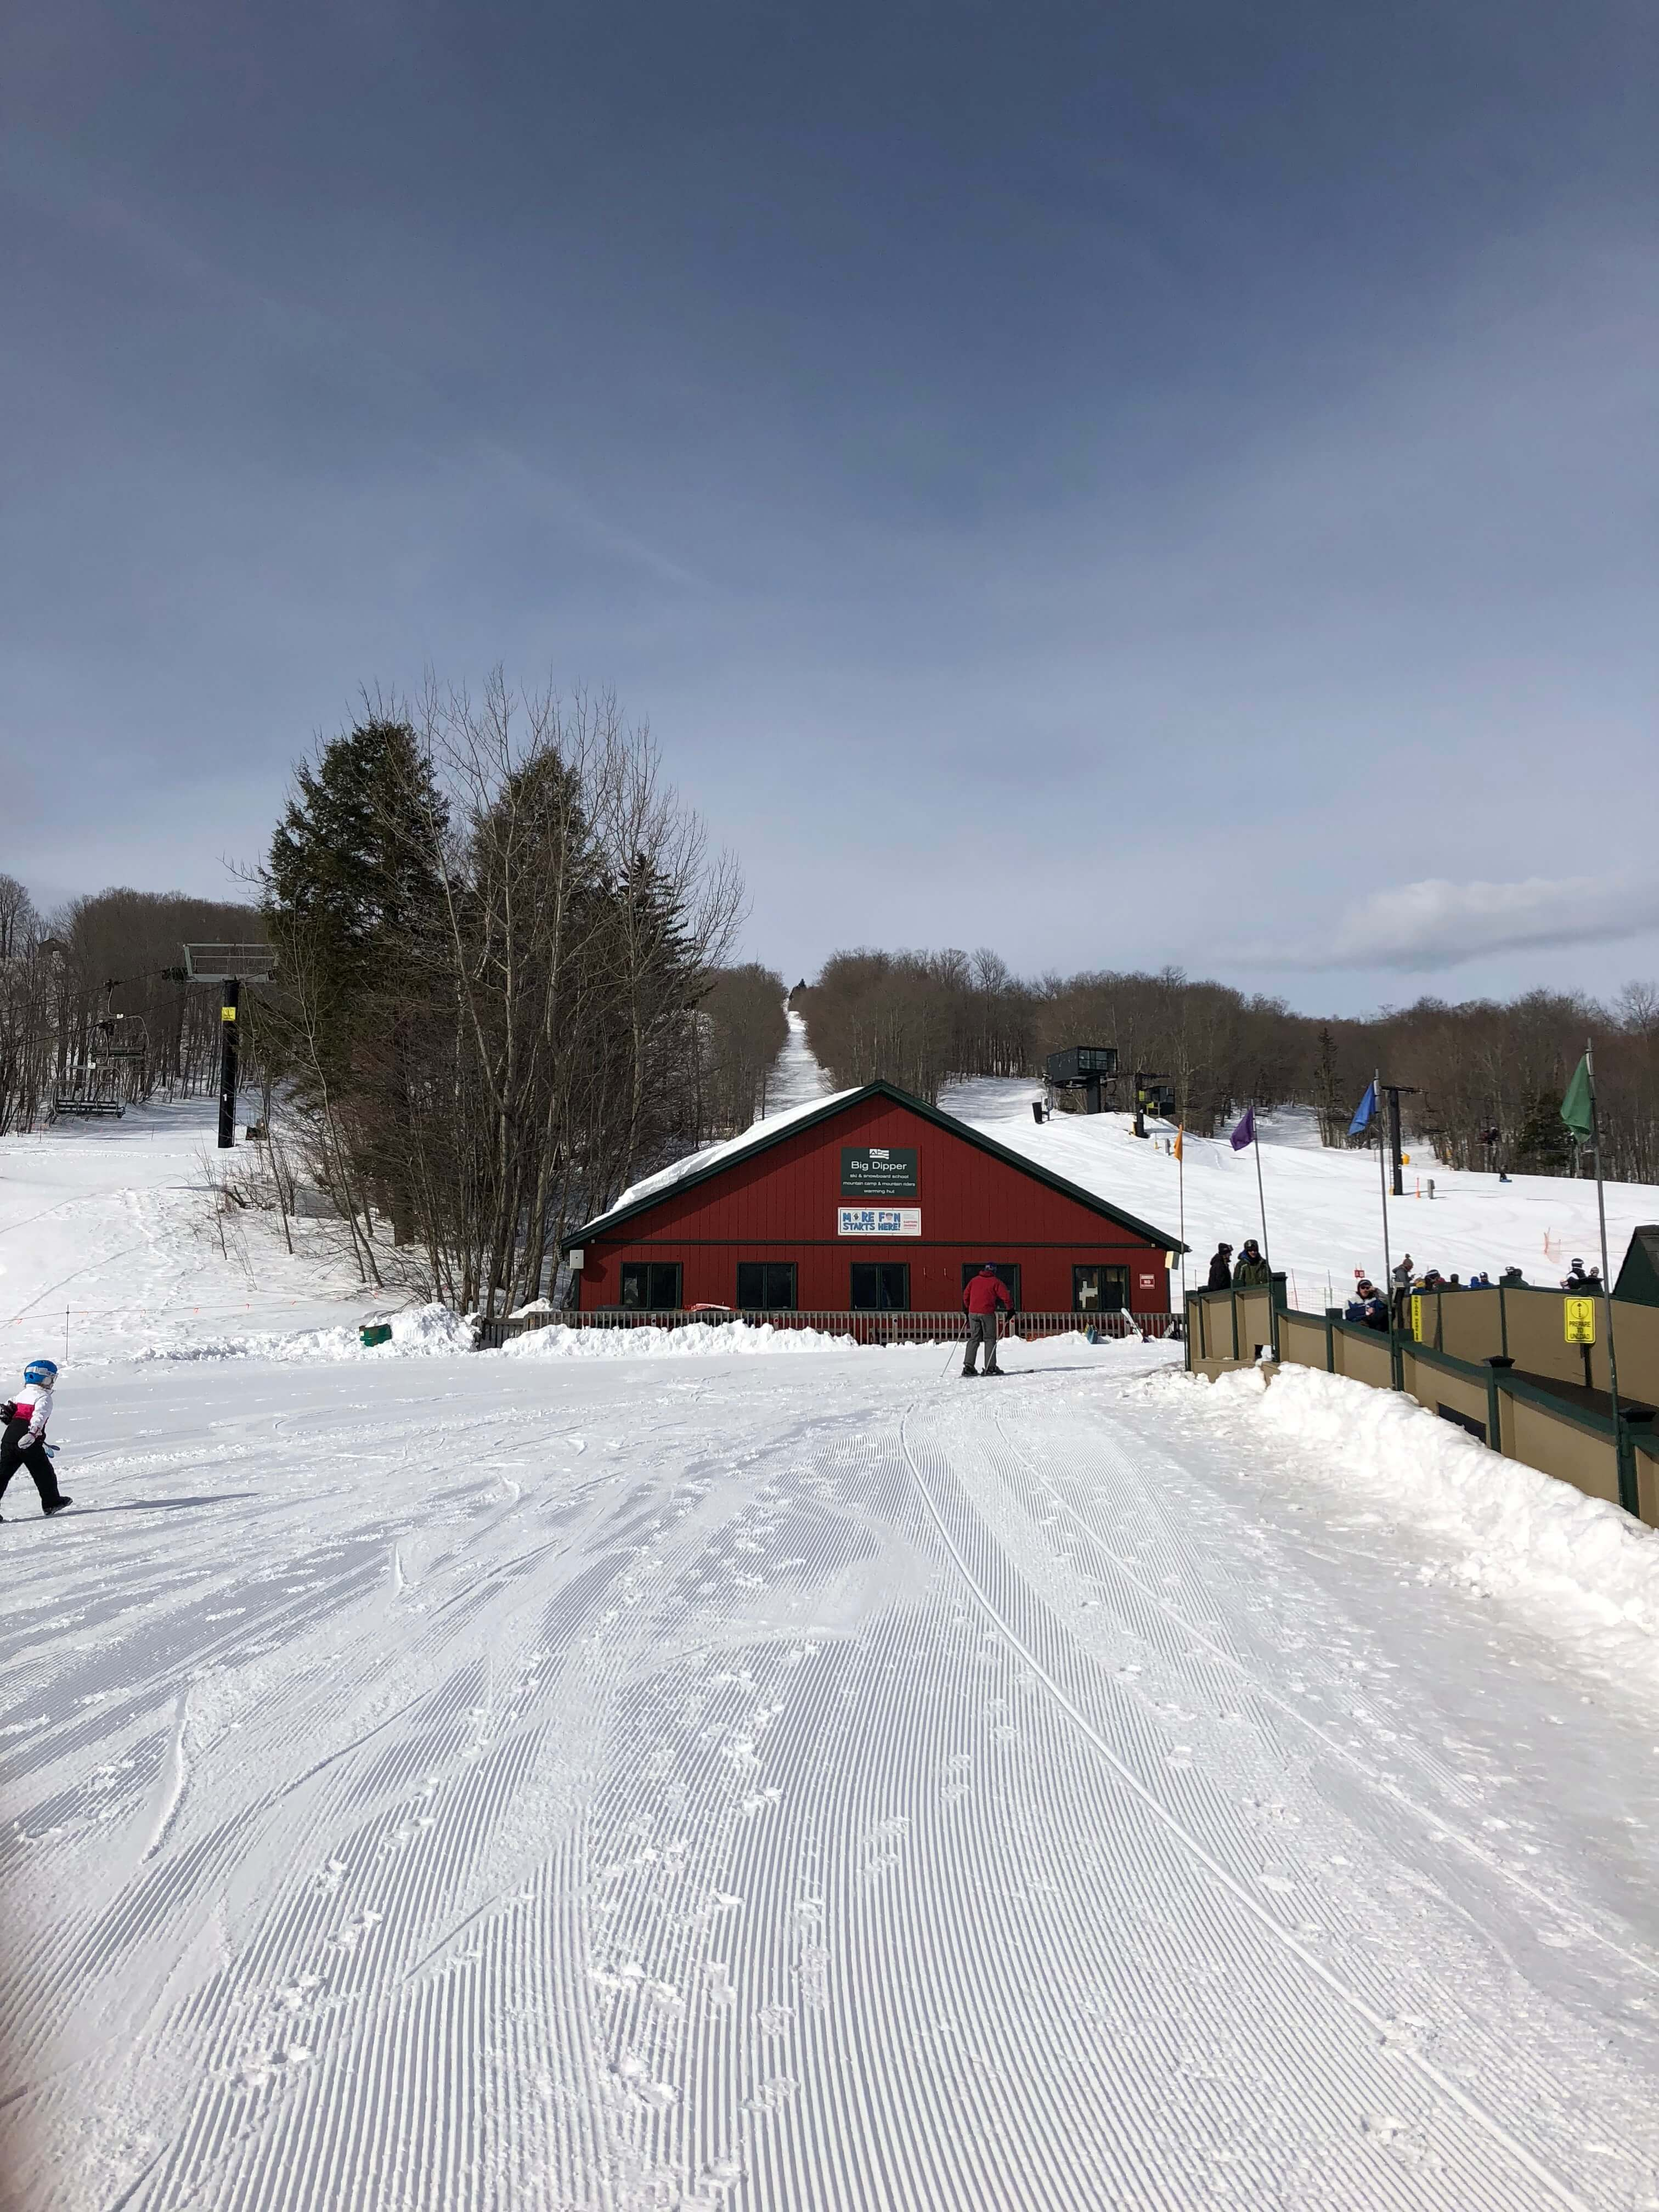 learning to ski as an adult at mount snow